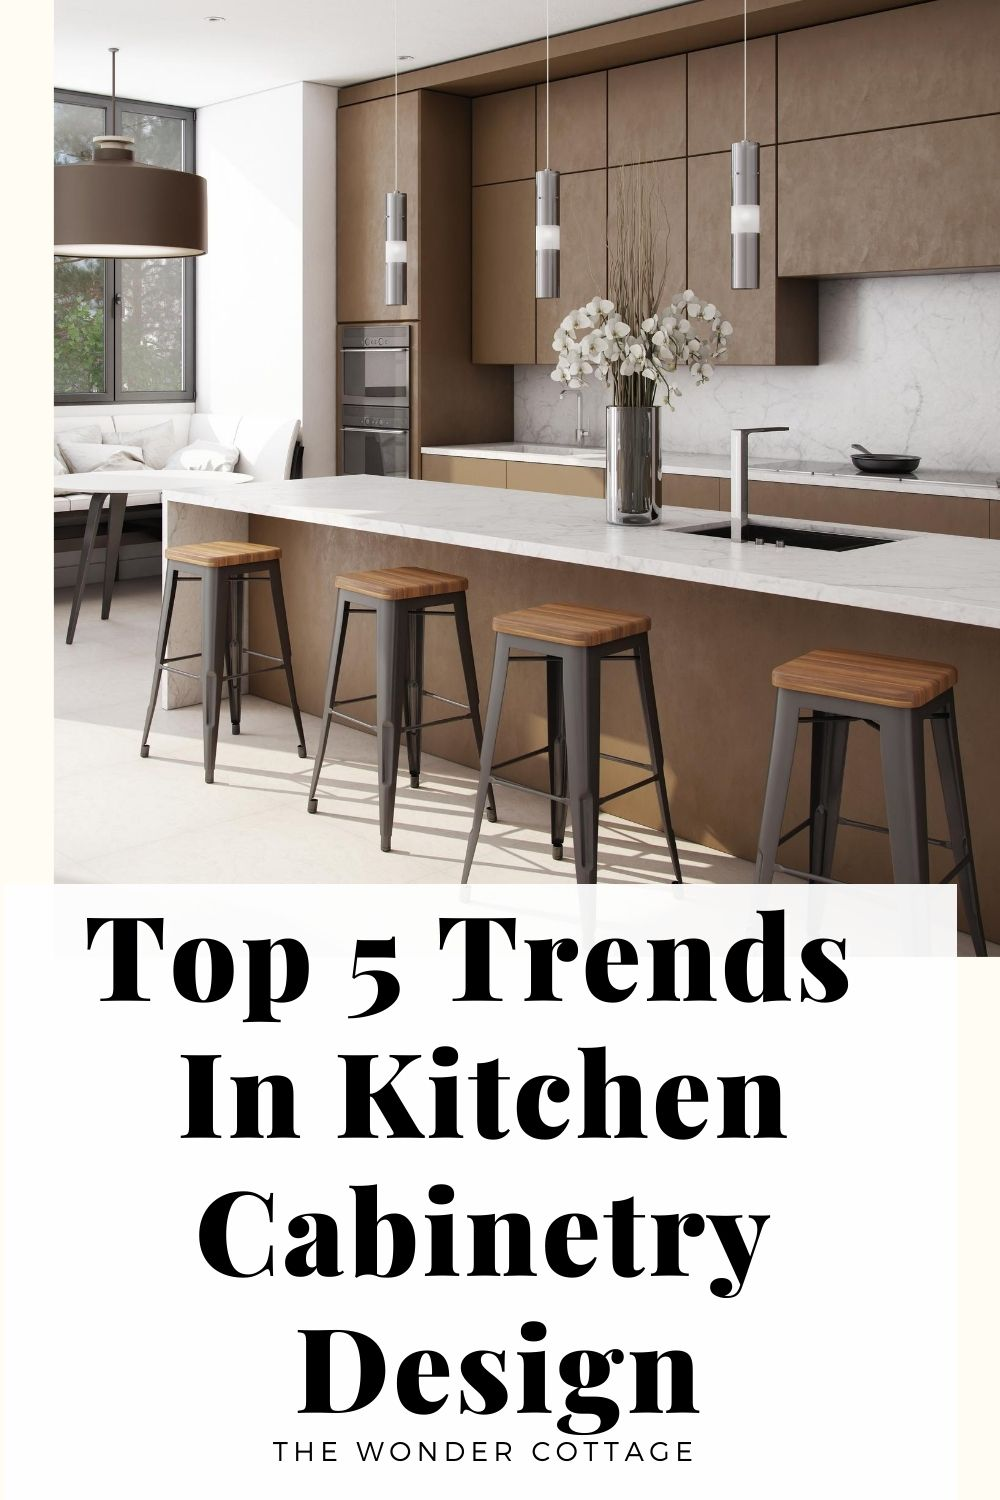 top 5 trends in kitchen cabinetry design